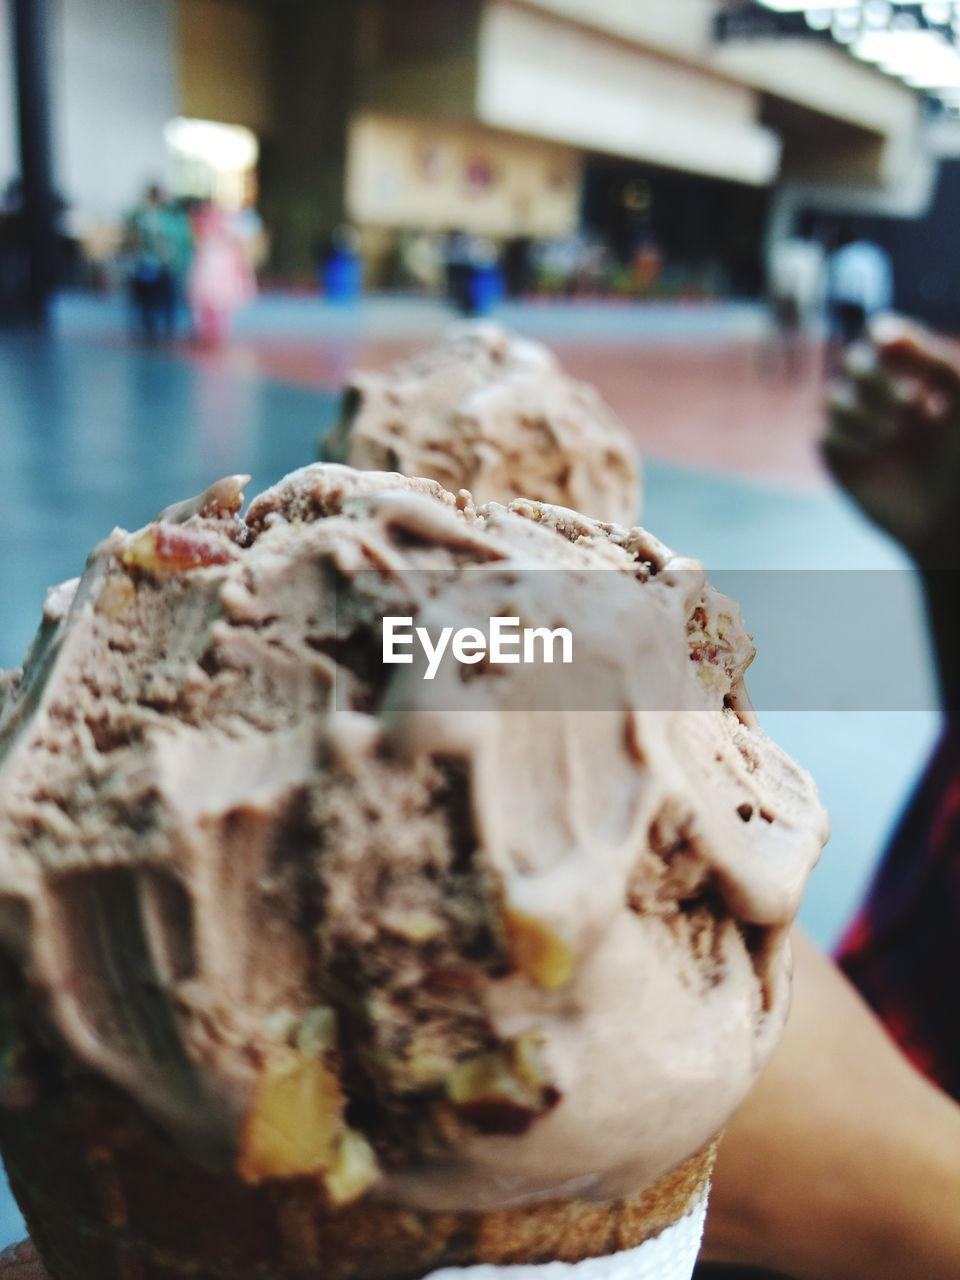 food and drink, one person, holding, real people, human hand, close-up, selective focus, photographing, focus on foreground, human body part, mobile phone, photography themes, wireless technology, food, freshness, day, indoors, photo messaging, ice cream, ready-to-eat, people